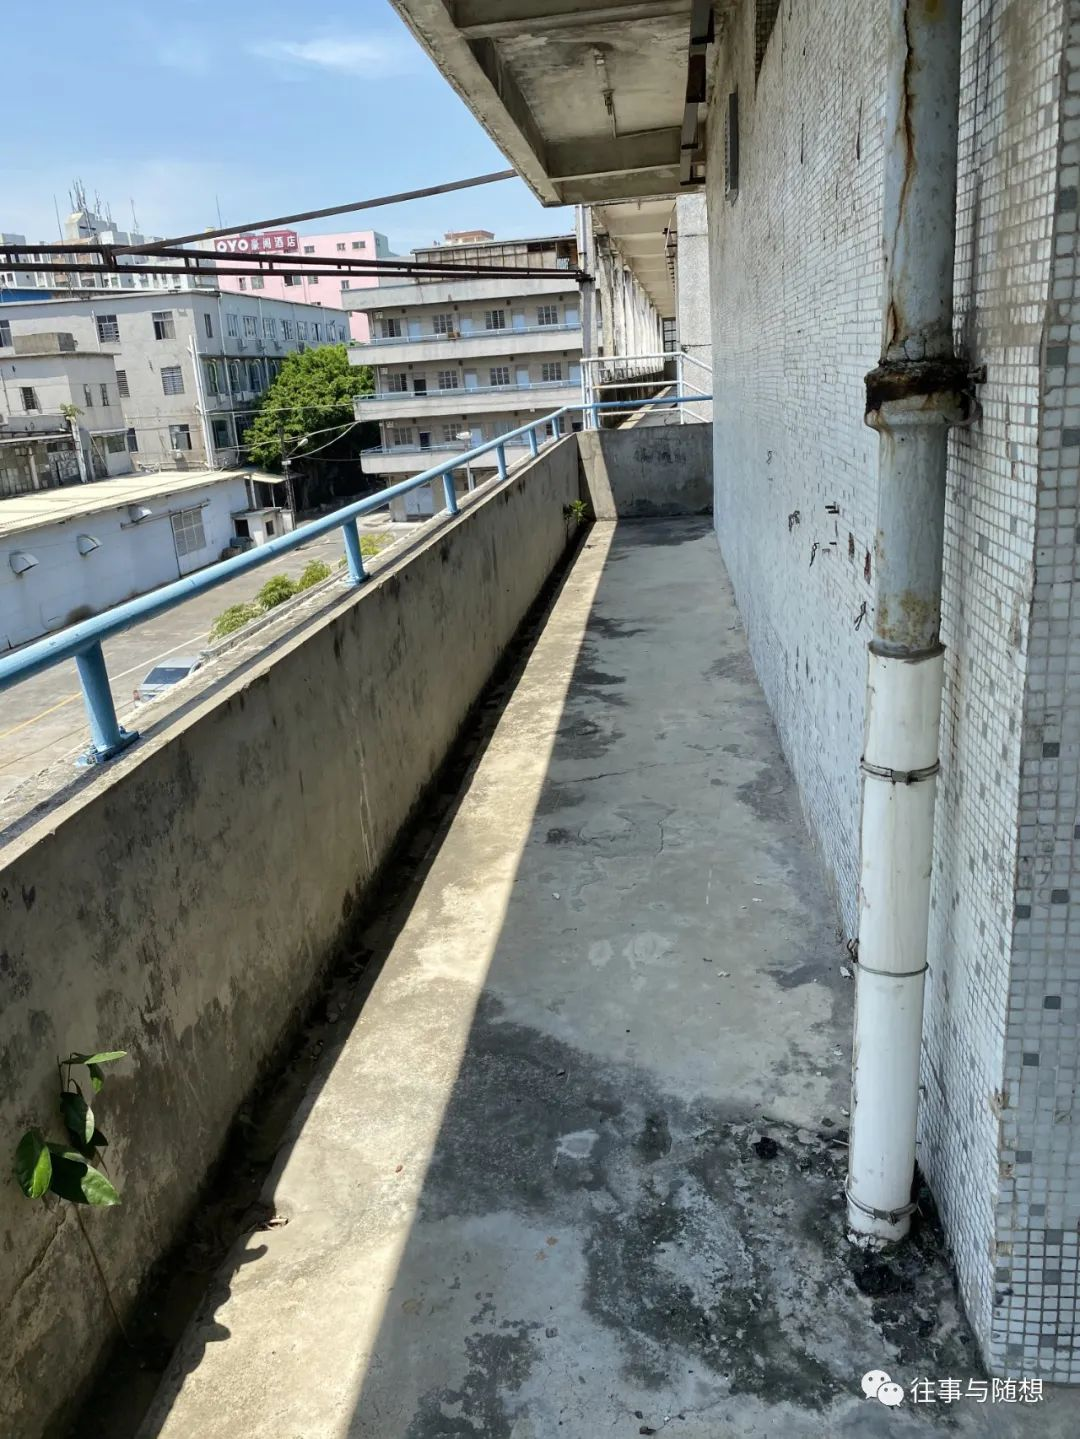 A decrepit concrete walkway with metal railings on the third floor of the dormitory building